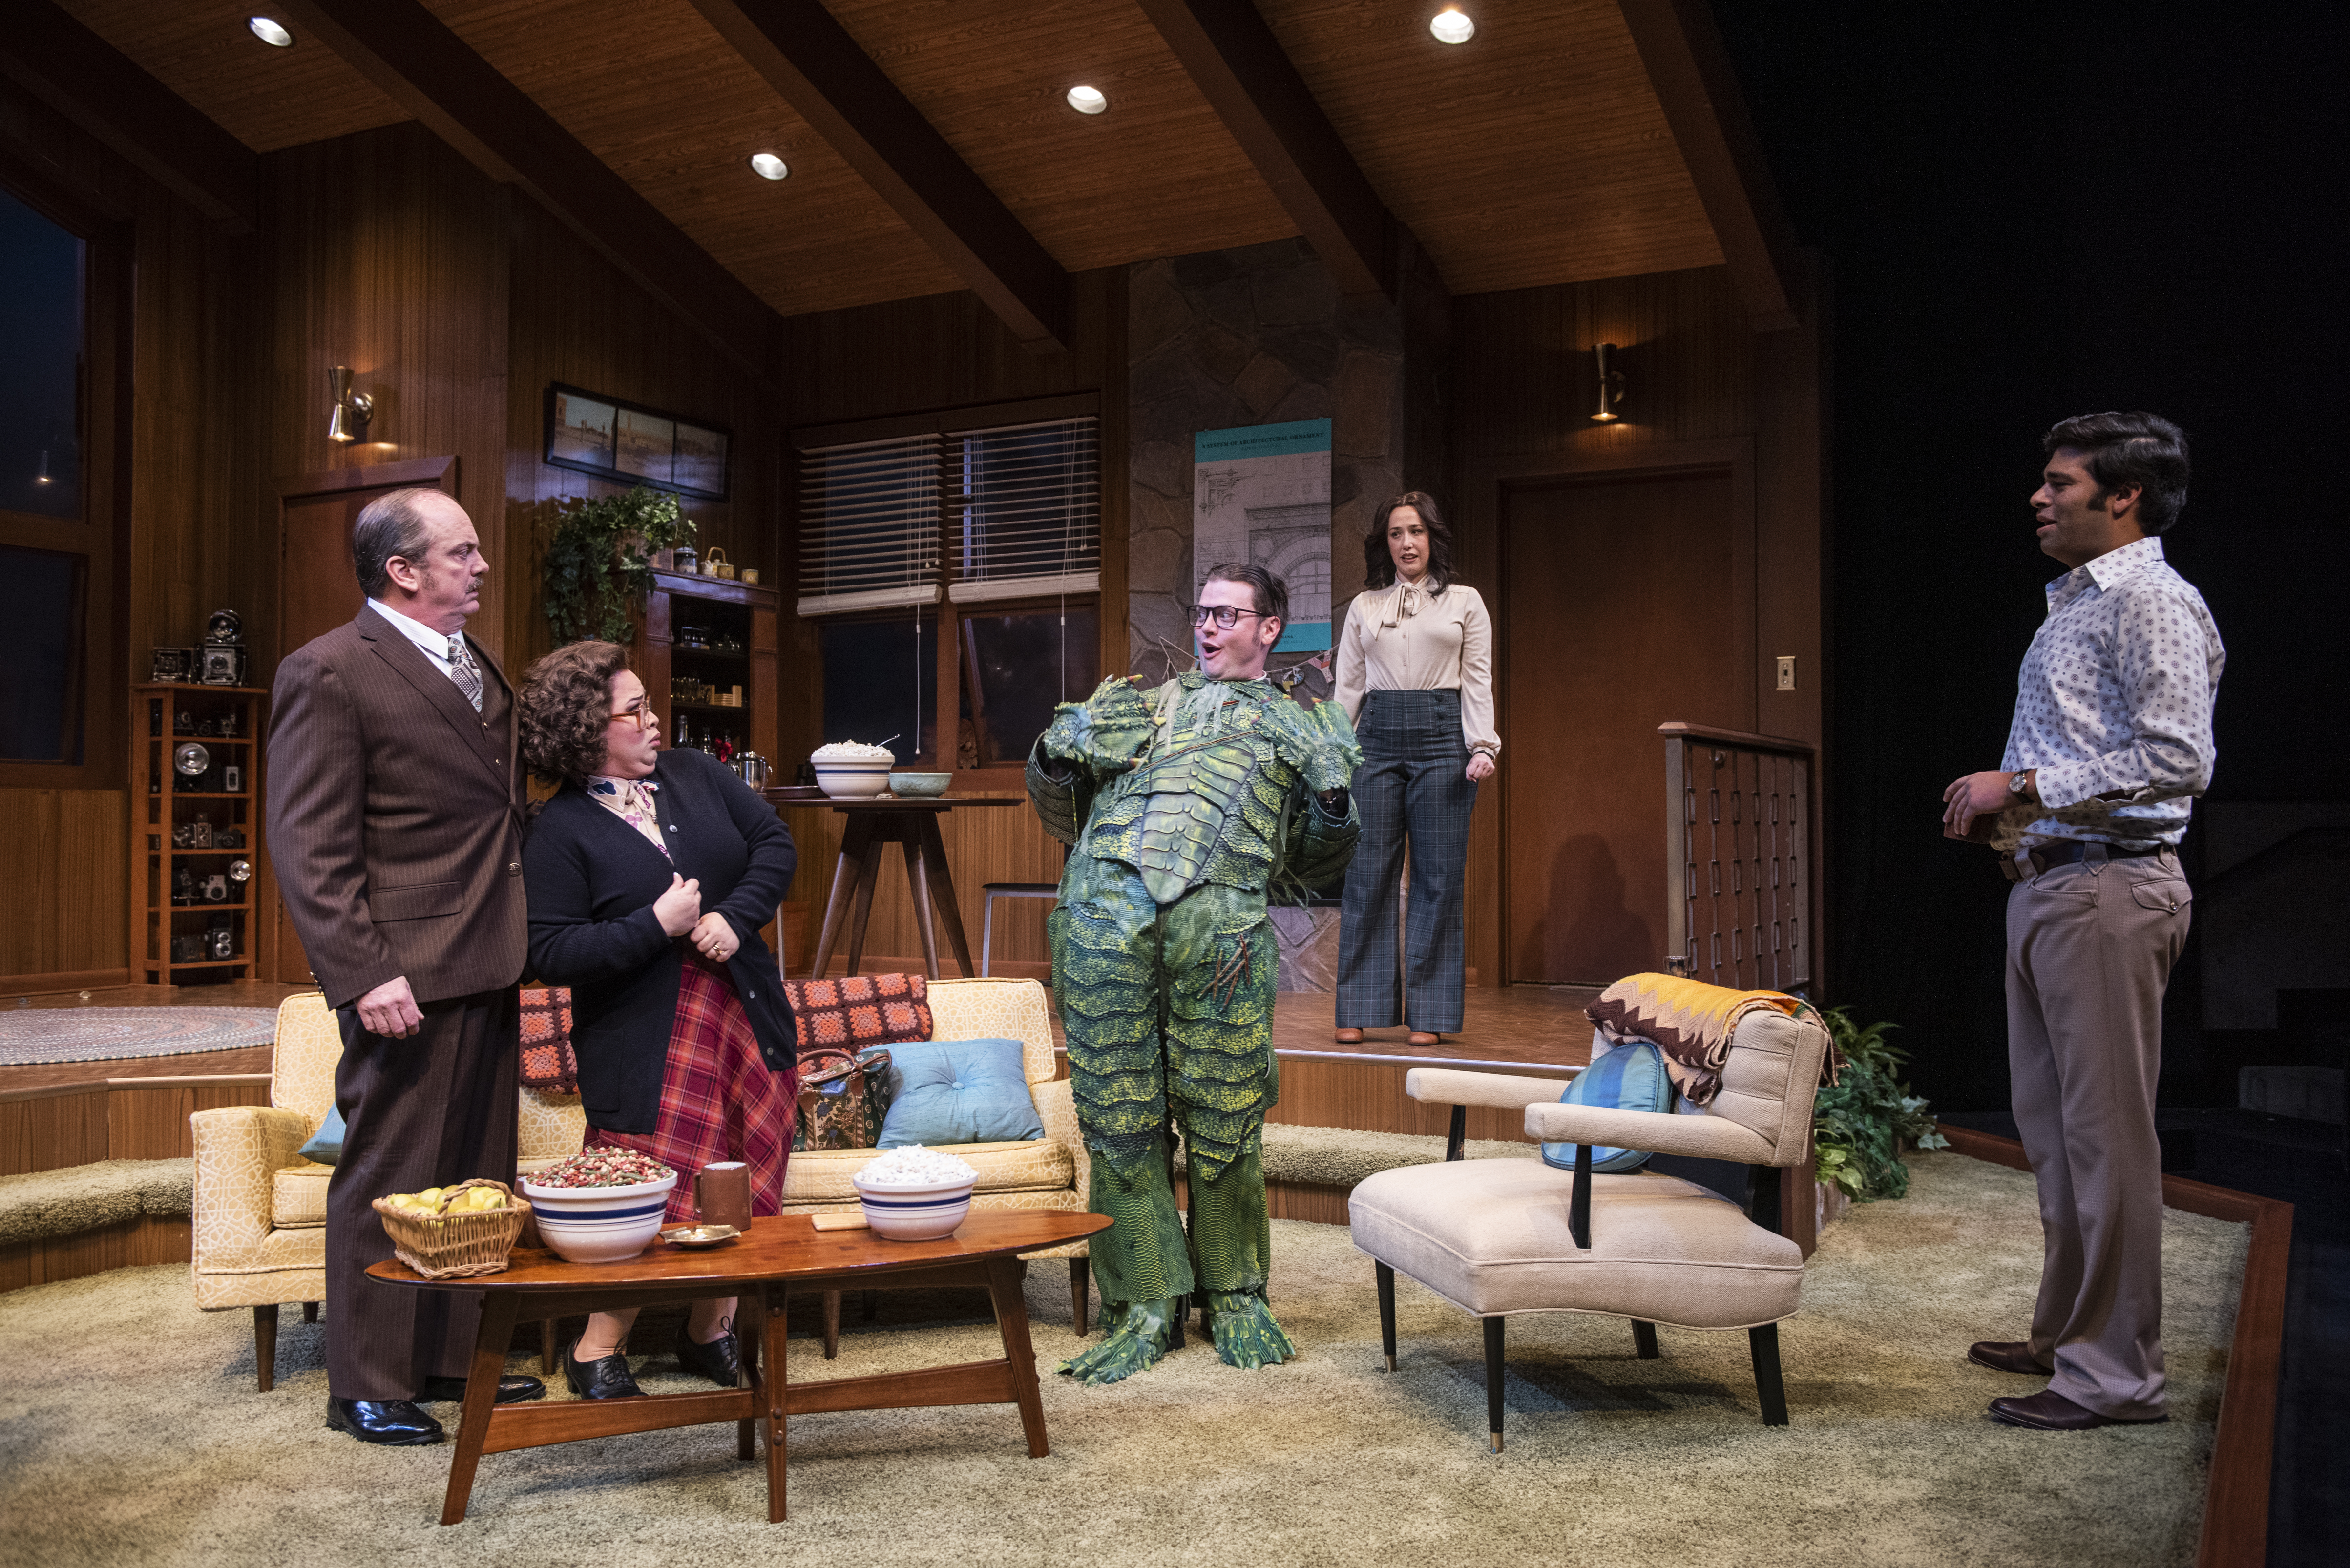 Milwaukee Repertory Theater presents The Nerd in the Quadracci Powerhouse November 12 – December 15, 2019. Left to right: Chris Mixon, Lillian Castillo, Michael Doherty, Alex Keiper and Andy Nagraj. Photo by Michael Brosilow.